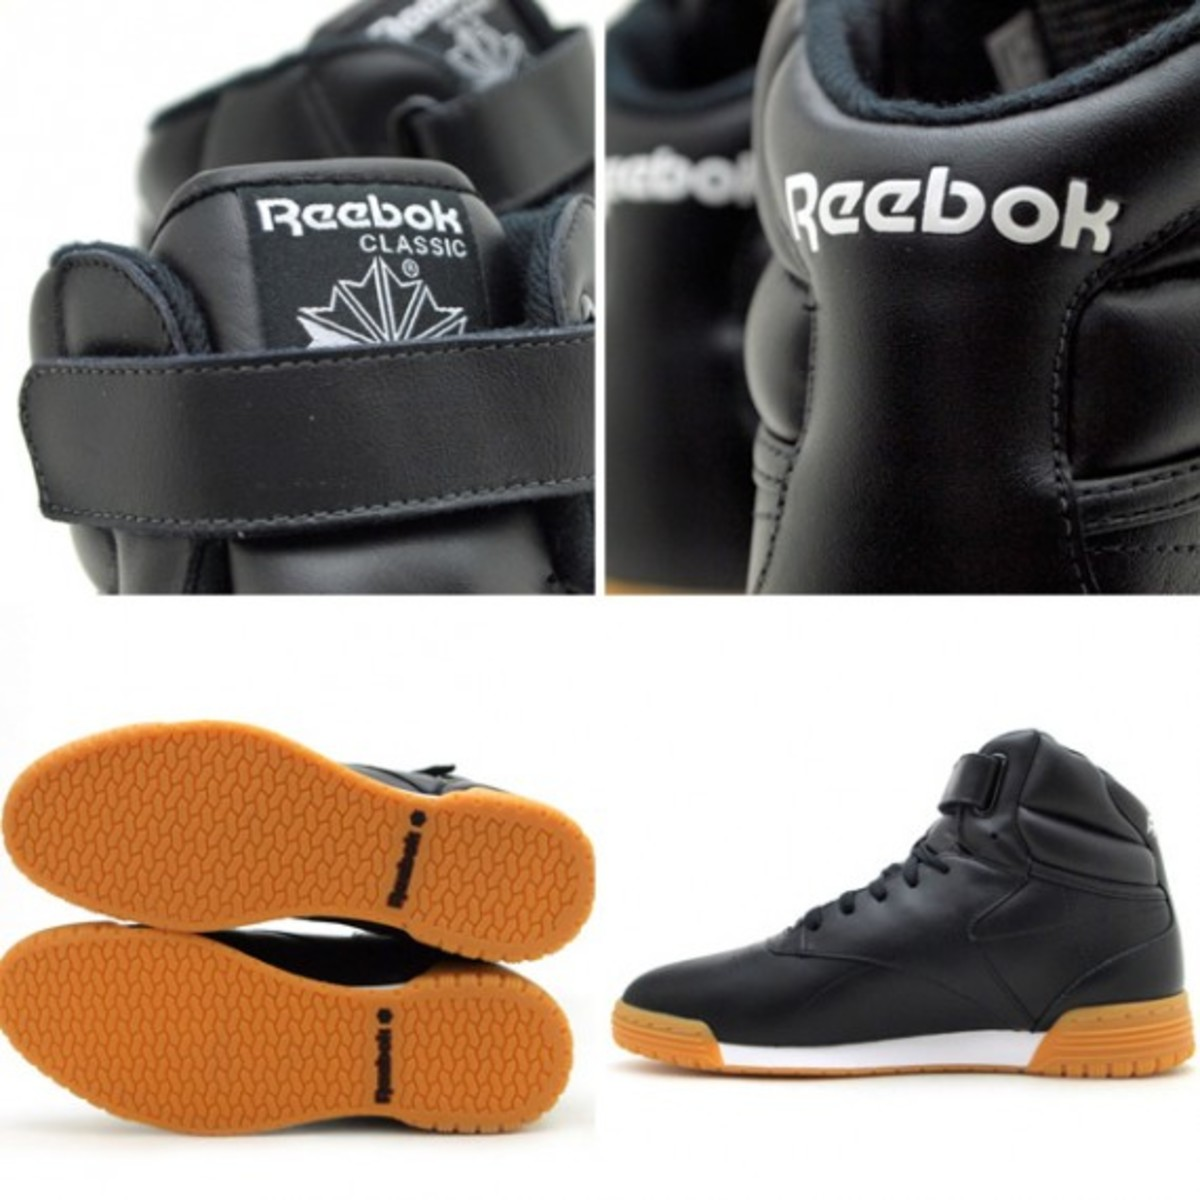 reebok-classics-ex-o-fit-gum-is-back-pack-03